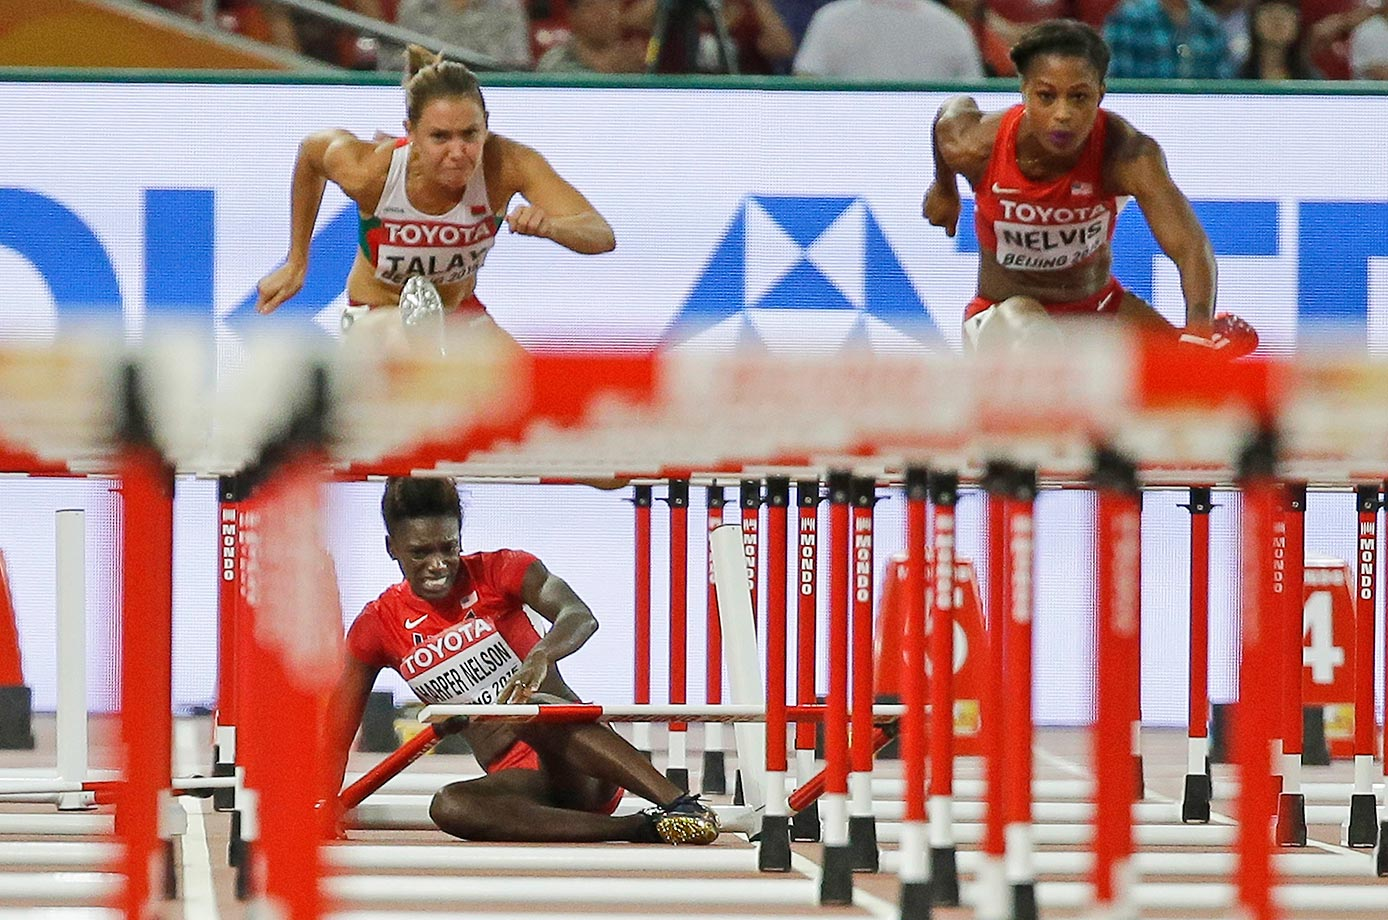 Dawn Harper Nelson of the U.S. sits on the track after hitting a hurdle in the 100m hurdles semifinal in Beijing.